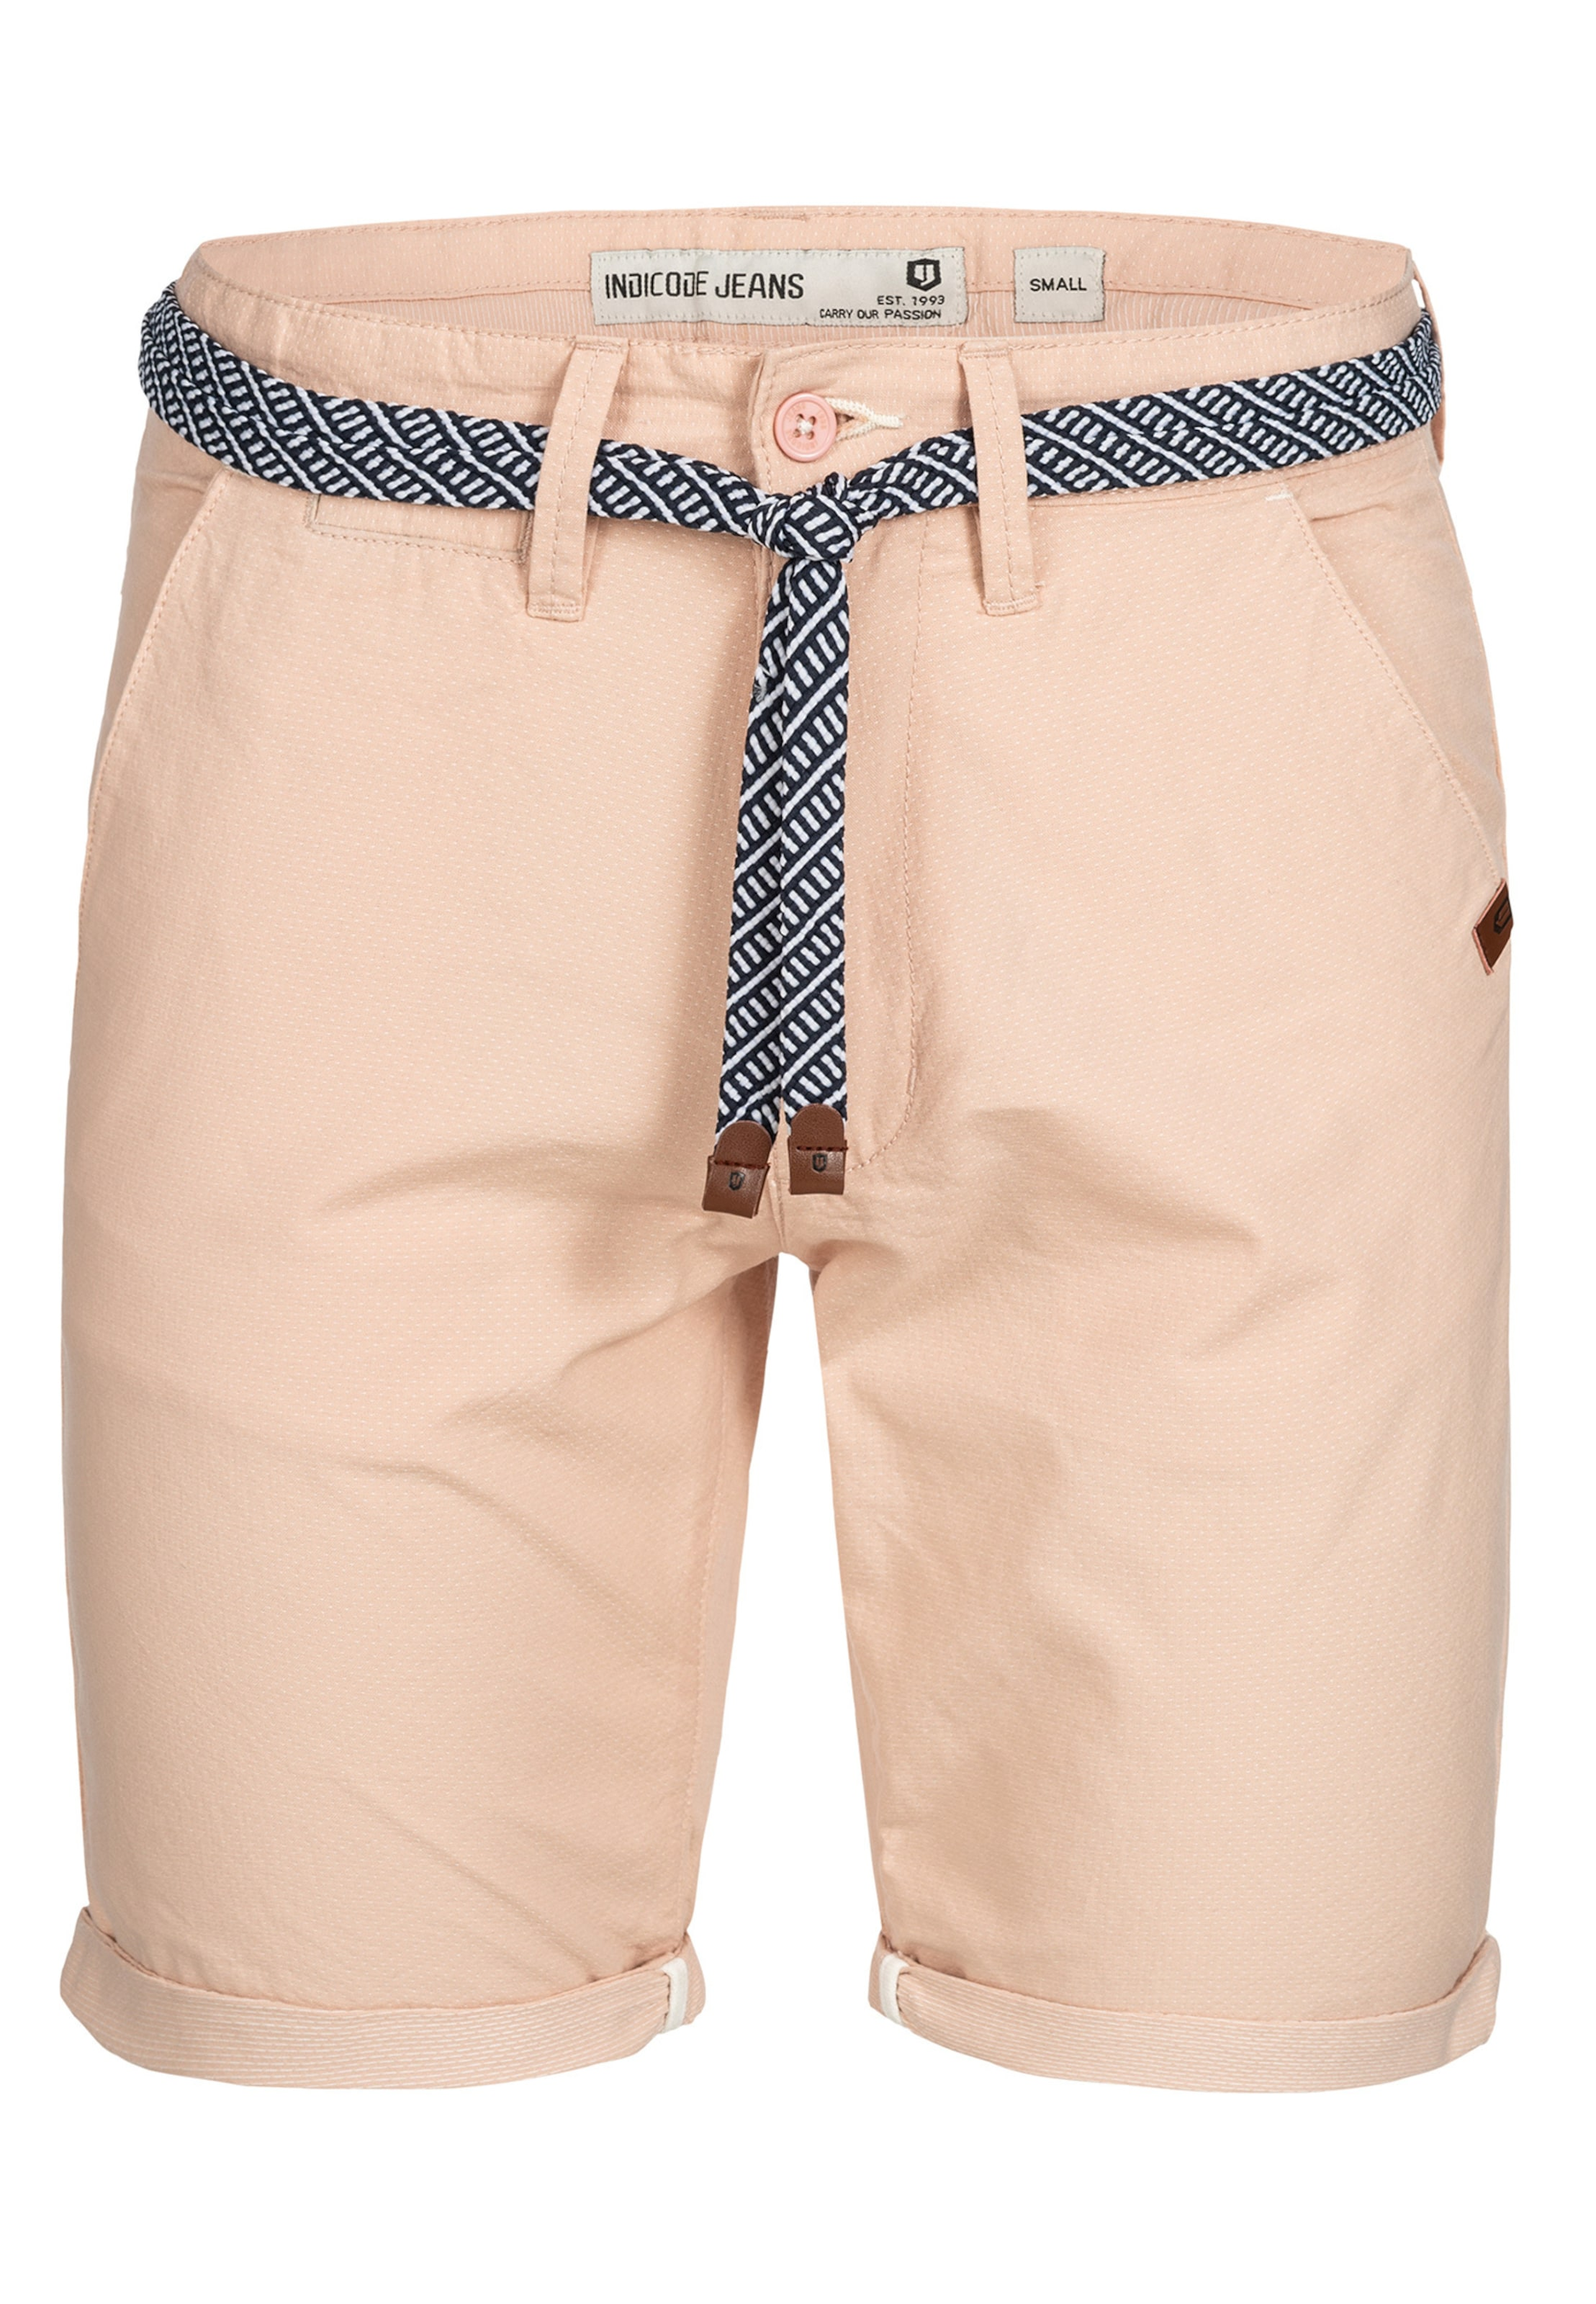 Rosa In Shorts Indicode Jeans 'acton' VzMUpS